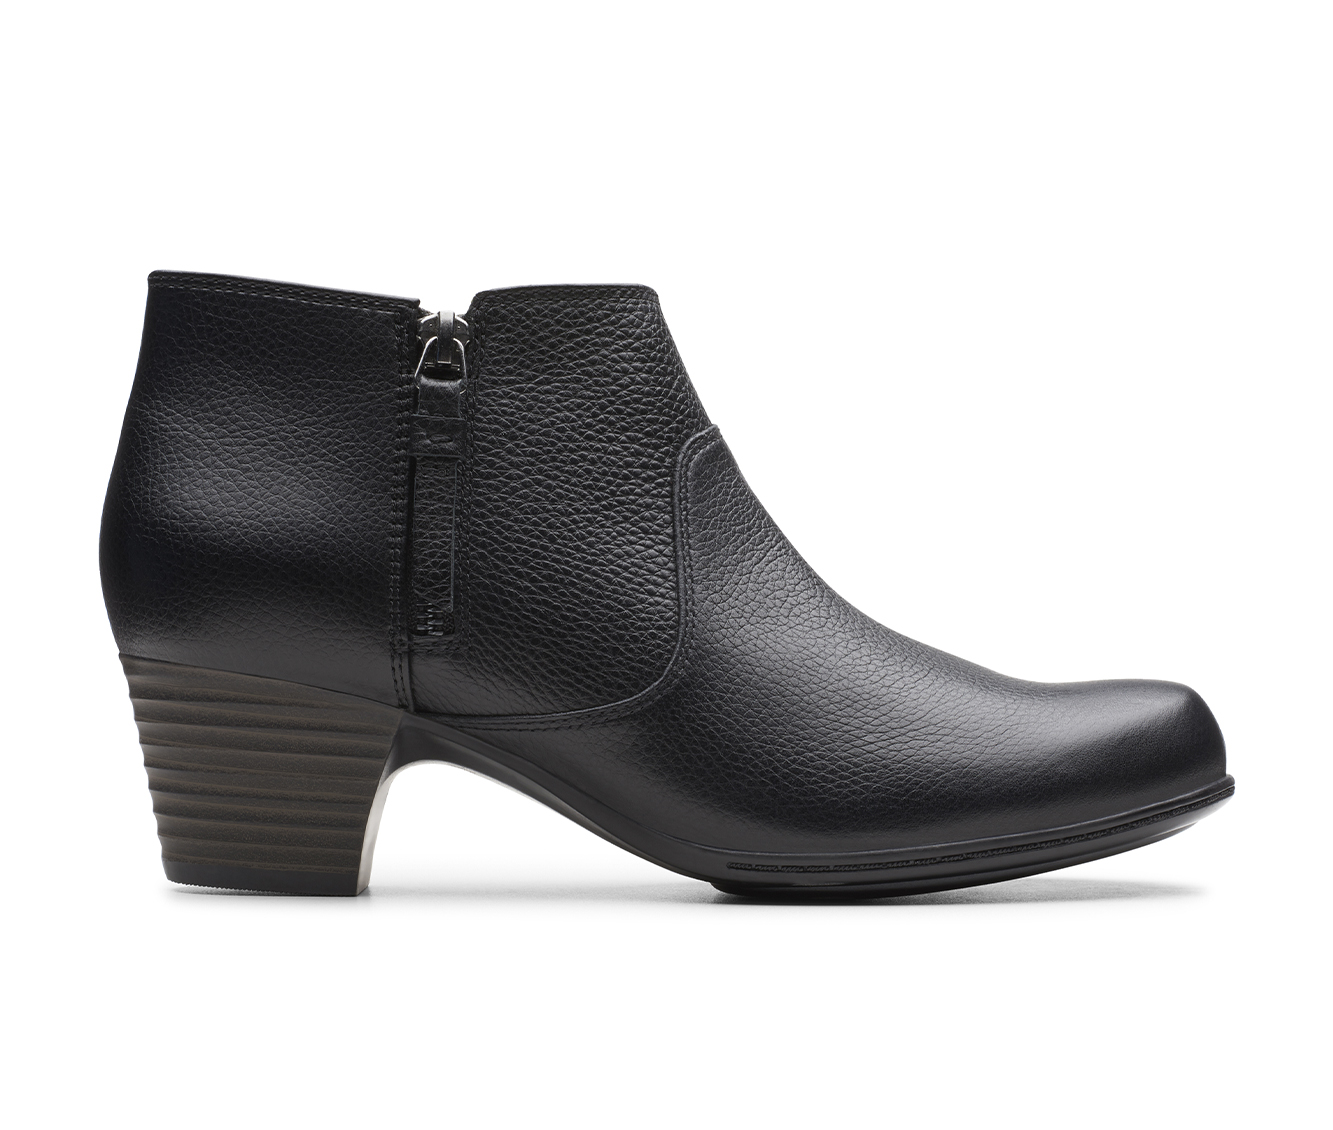 Clarks Valarie 2 Sofia Women's Boots (Black - Leather)